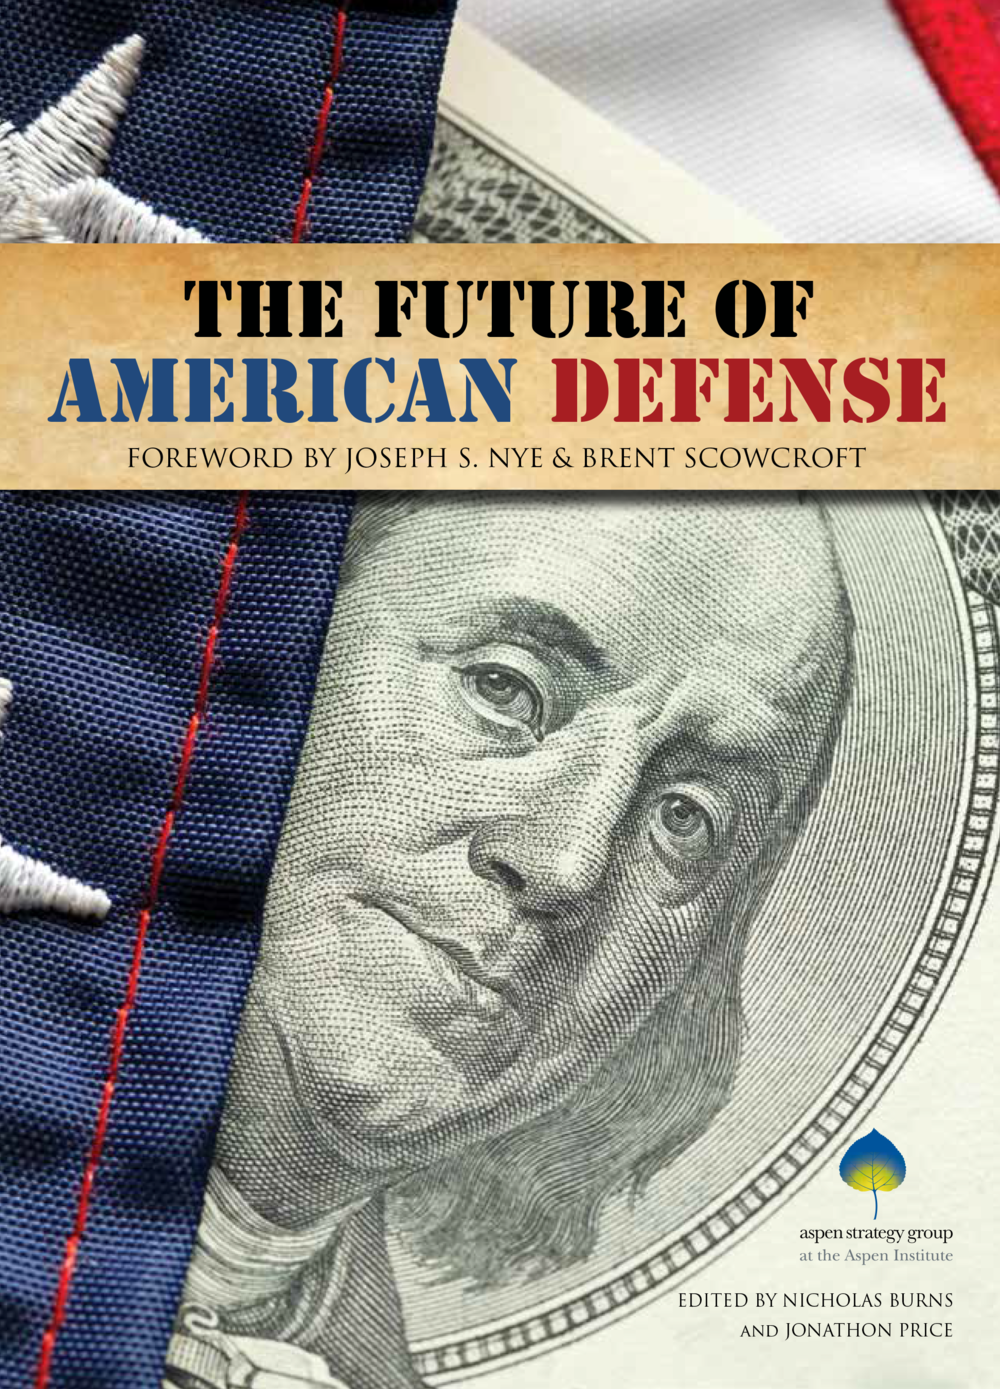 The future of american defense - With the American withdrawal from Iraq and the imminent drawdown of the majority of American and NATO ground forces from Afghanistan, the U.S. is bringing to a close the longest and most intensive period of combat in our history. Coupled with the challenges of the budget crisis and political dysfunction in Washington, D.C., this is also a time of tough and consequential choices for the defense budget. In this volume, national security experts, academics, and business leaders discuss how to balance the aims and objectives of U.S. defense strategy with current fiscal realities.The book also offers strategies to coordinate defense spending between the executive branch and Congress.Contributors include: Gordon Adams, Kurt Campbell, John Dowdy, Diana Farrell, Michèle Flournoy, Melvyn P. Leffler, Jane Holl Lute, Michael O'Hanlon, Carla Anne Robbins, and Philip ZelikowPublished: February 26, 2014